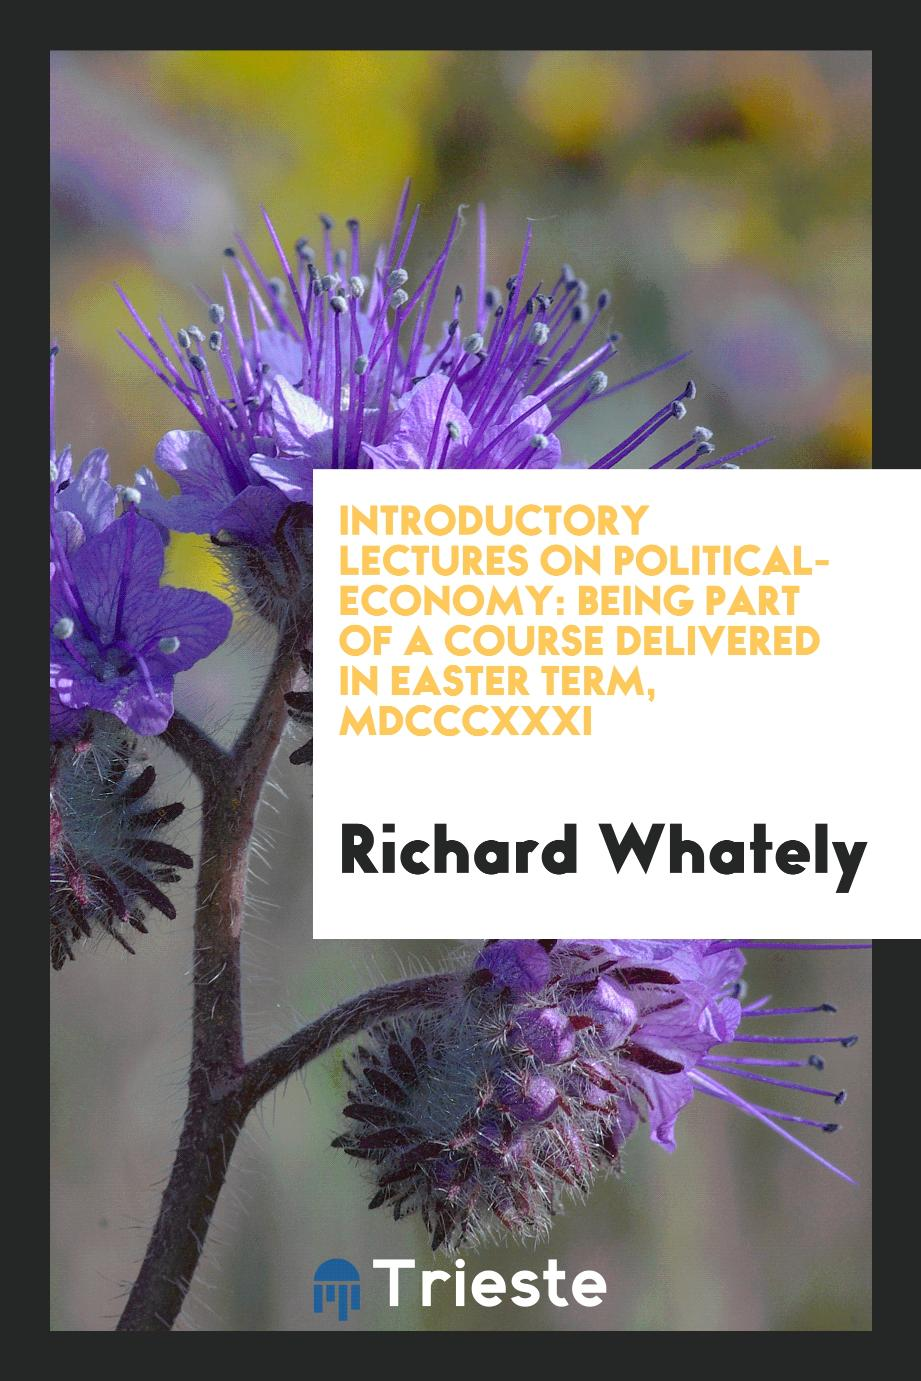 Introductory Lectures on Political-economy: Being Part of a Course Delivered in Easter Term, MDCCCXXXI